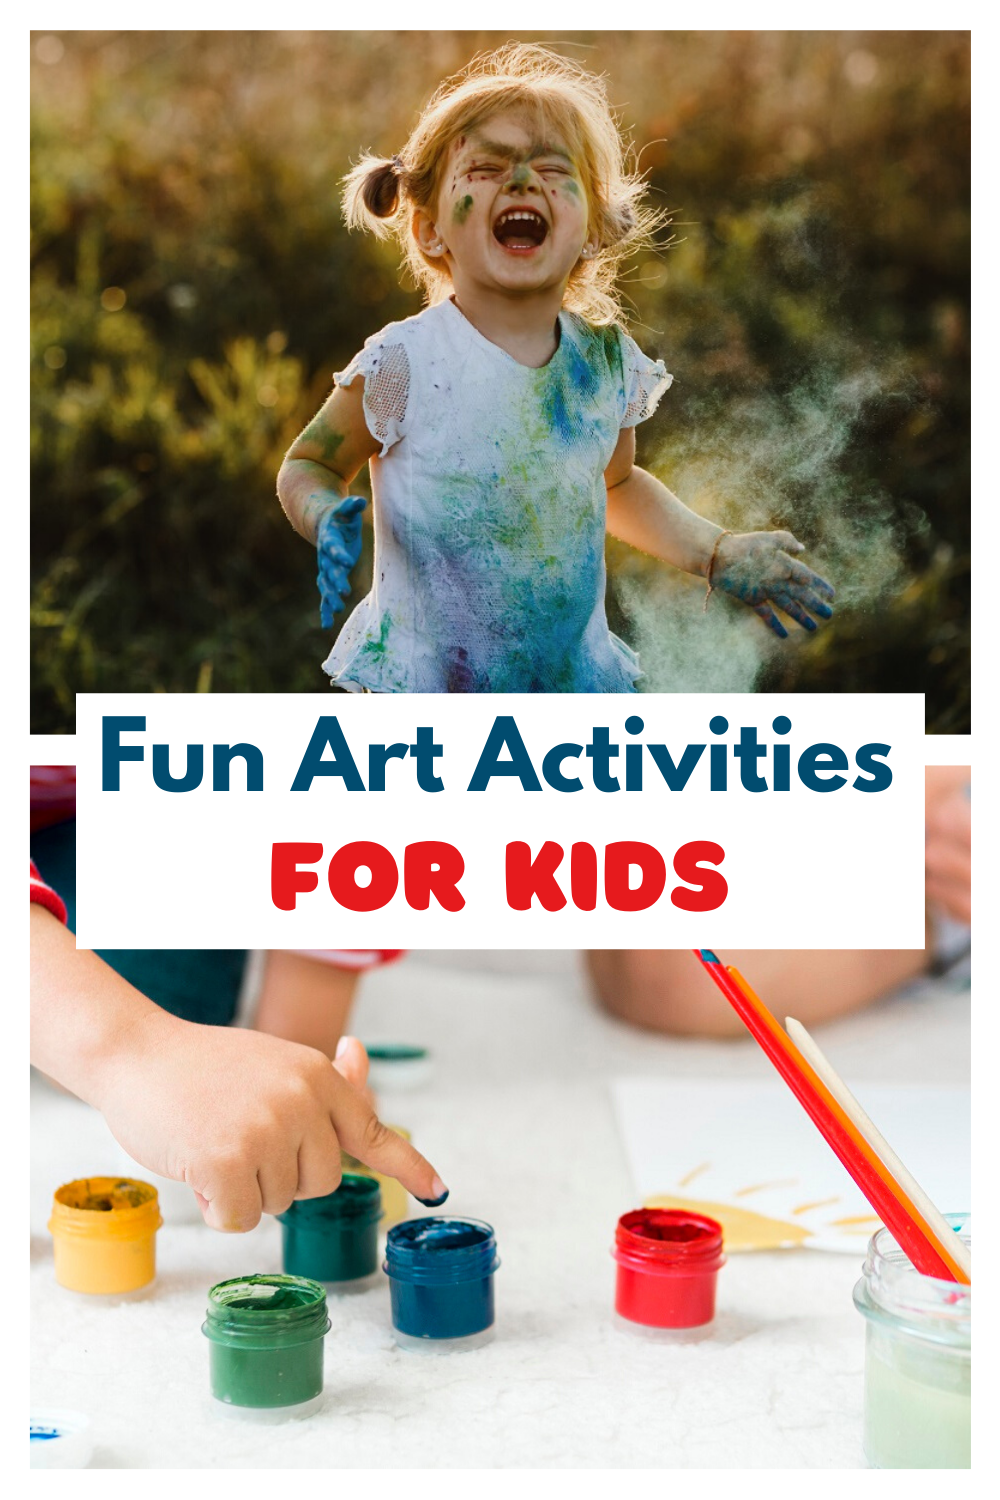 Here are some fun art activities that you can do with your toddler: #diy #diycraft #artproject #arttherapy #kidcraft #kidproject